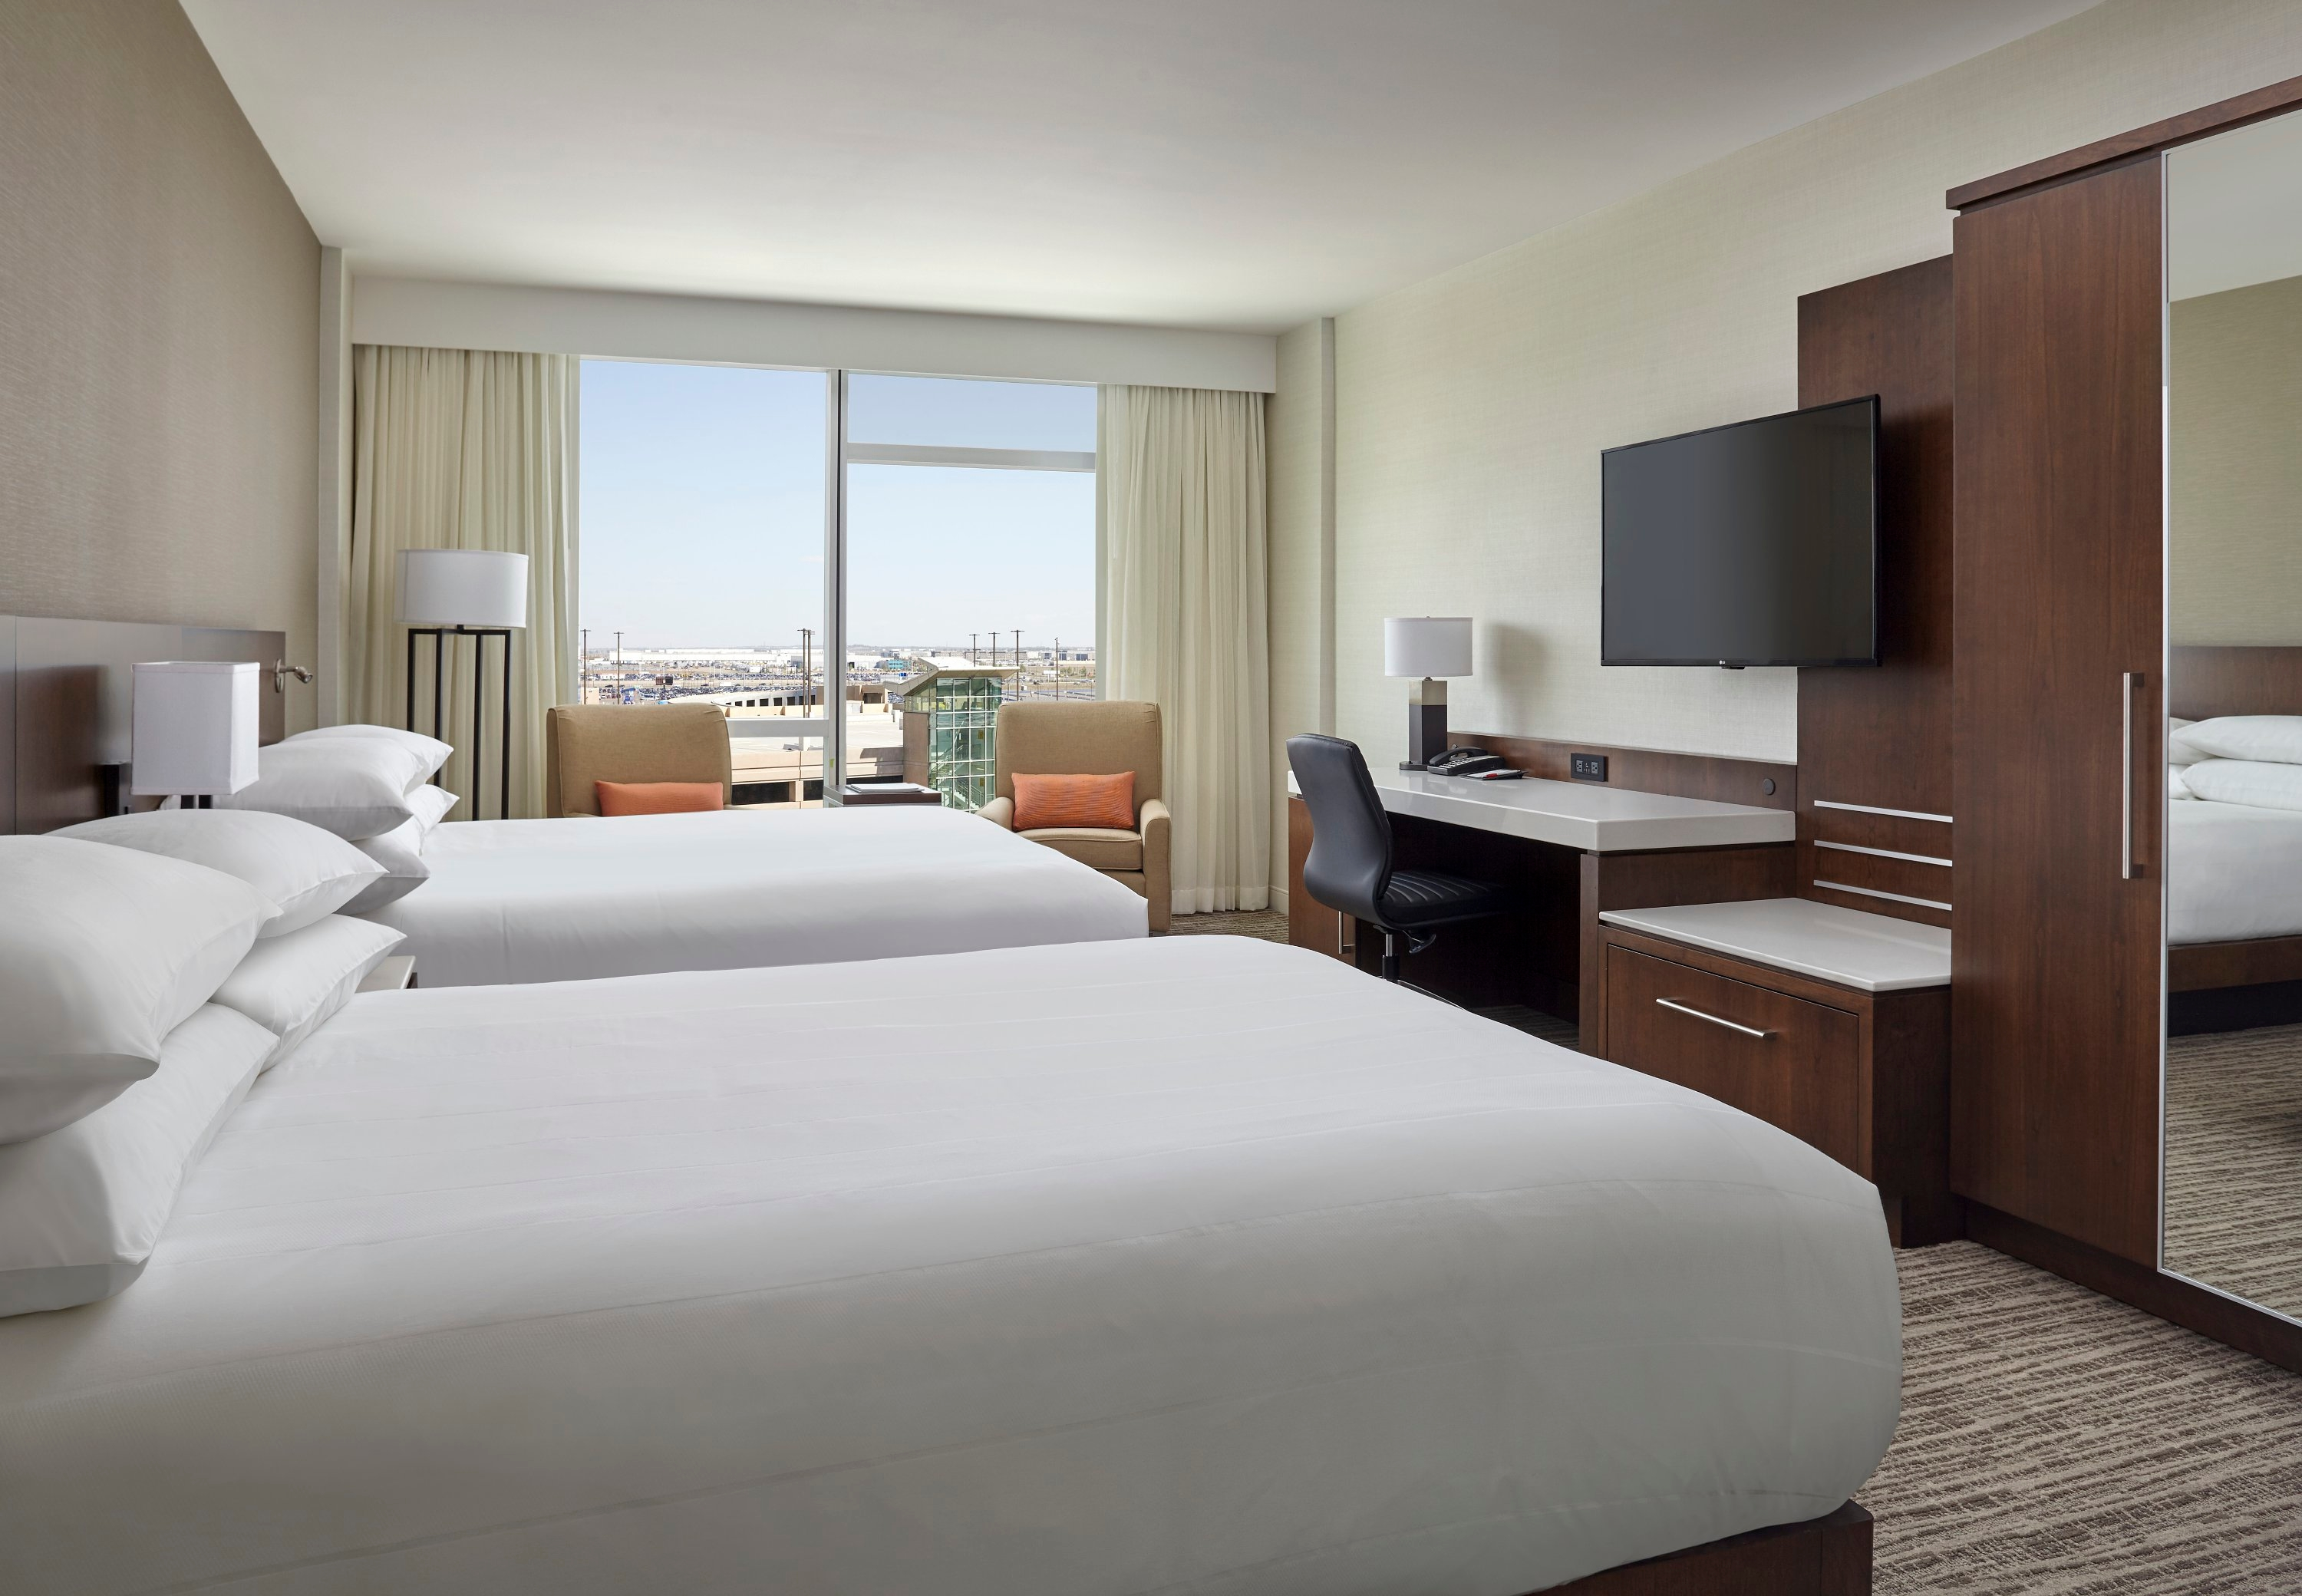 calgary airport marriott in terminal hotel calgary ab. Black Bedroom Furniture Sets. Home Design Ideas